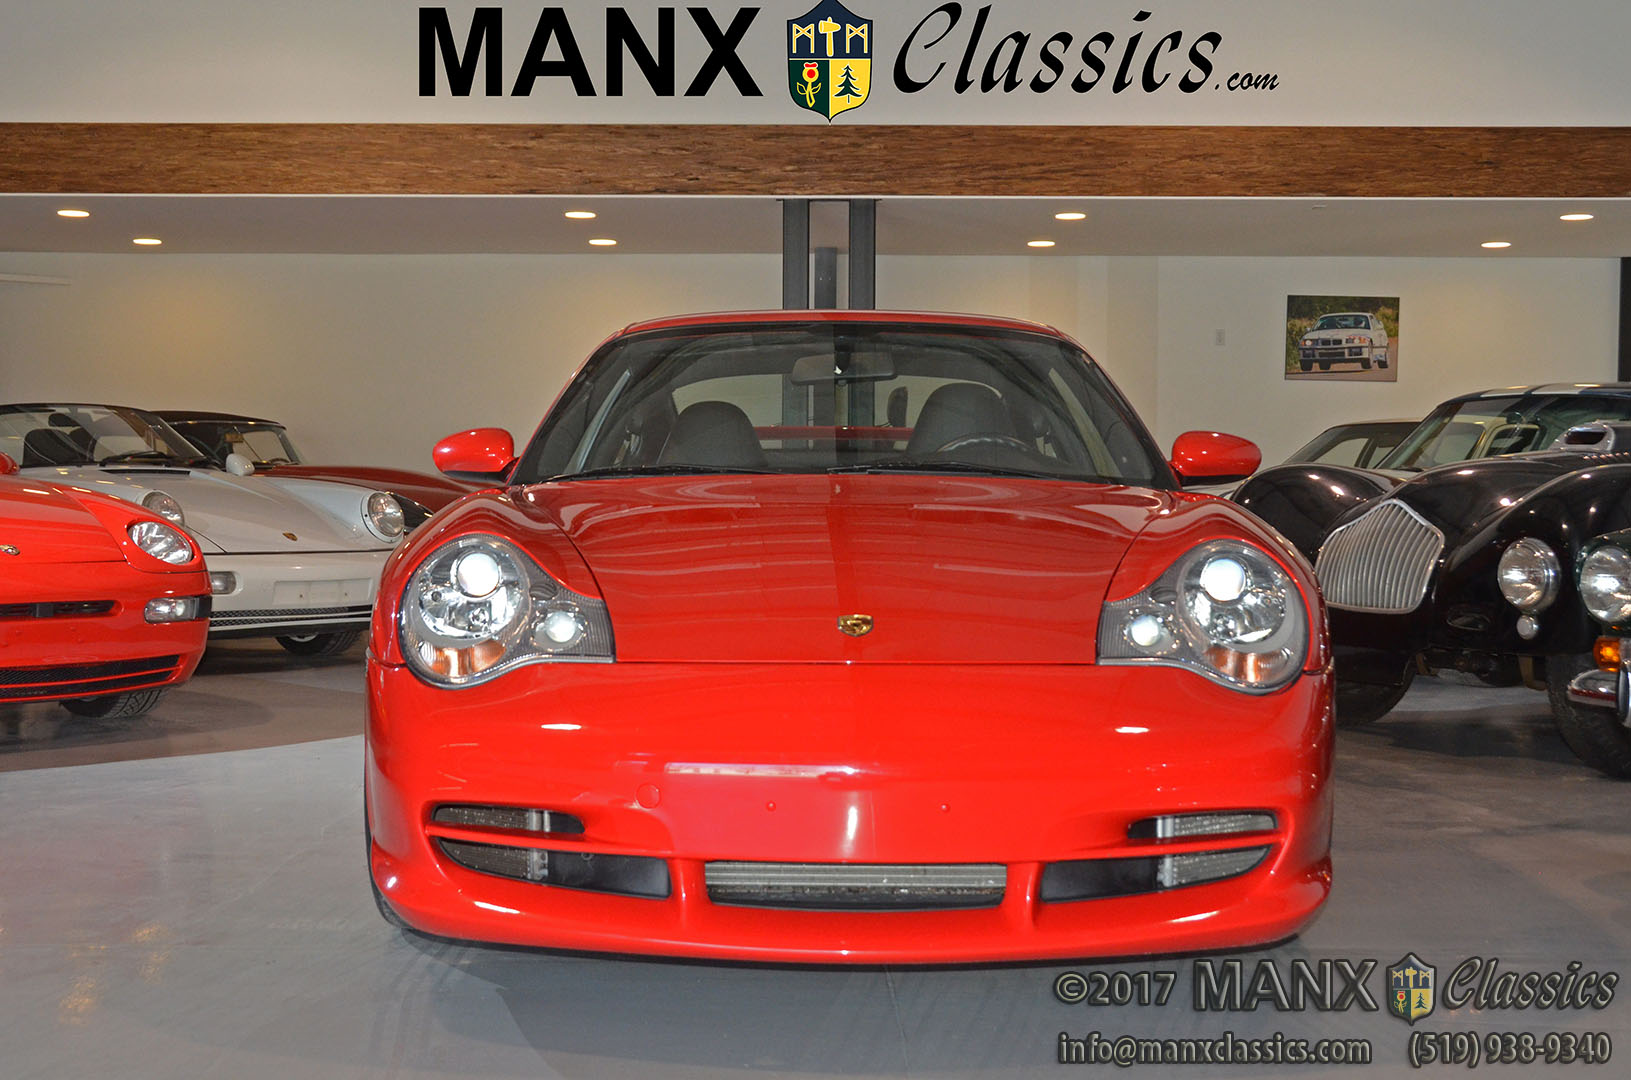 Manx Classics – Cars For SaleFor Sale – Manx Classic Cars